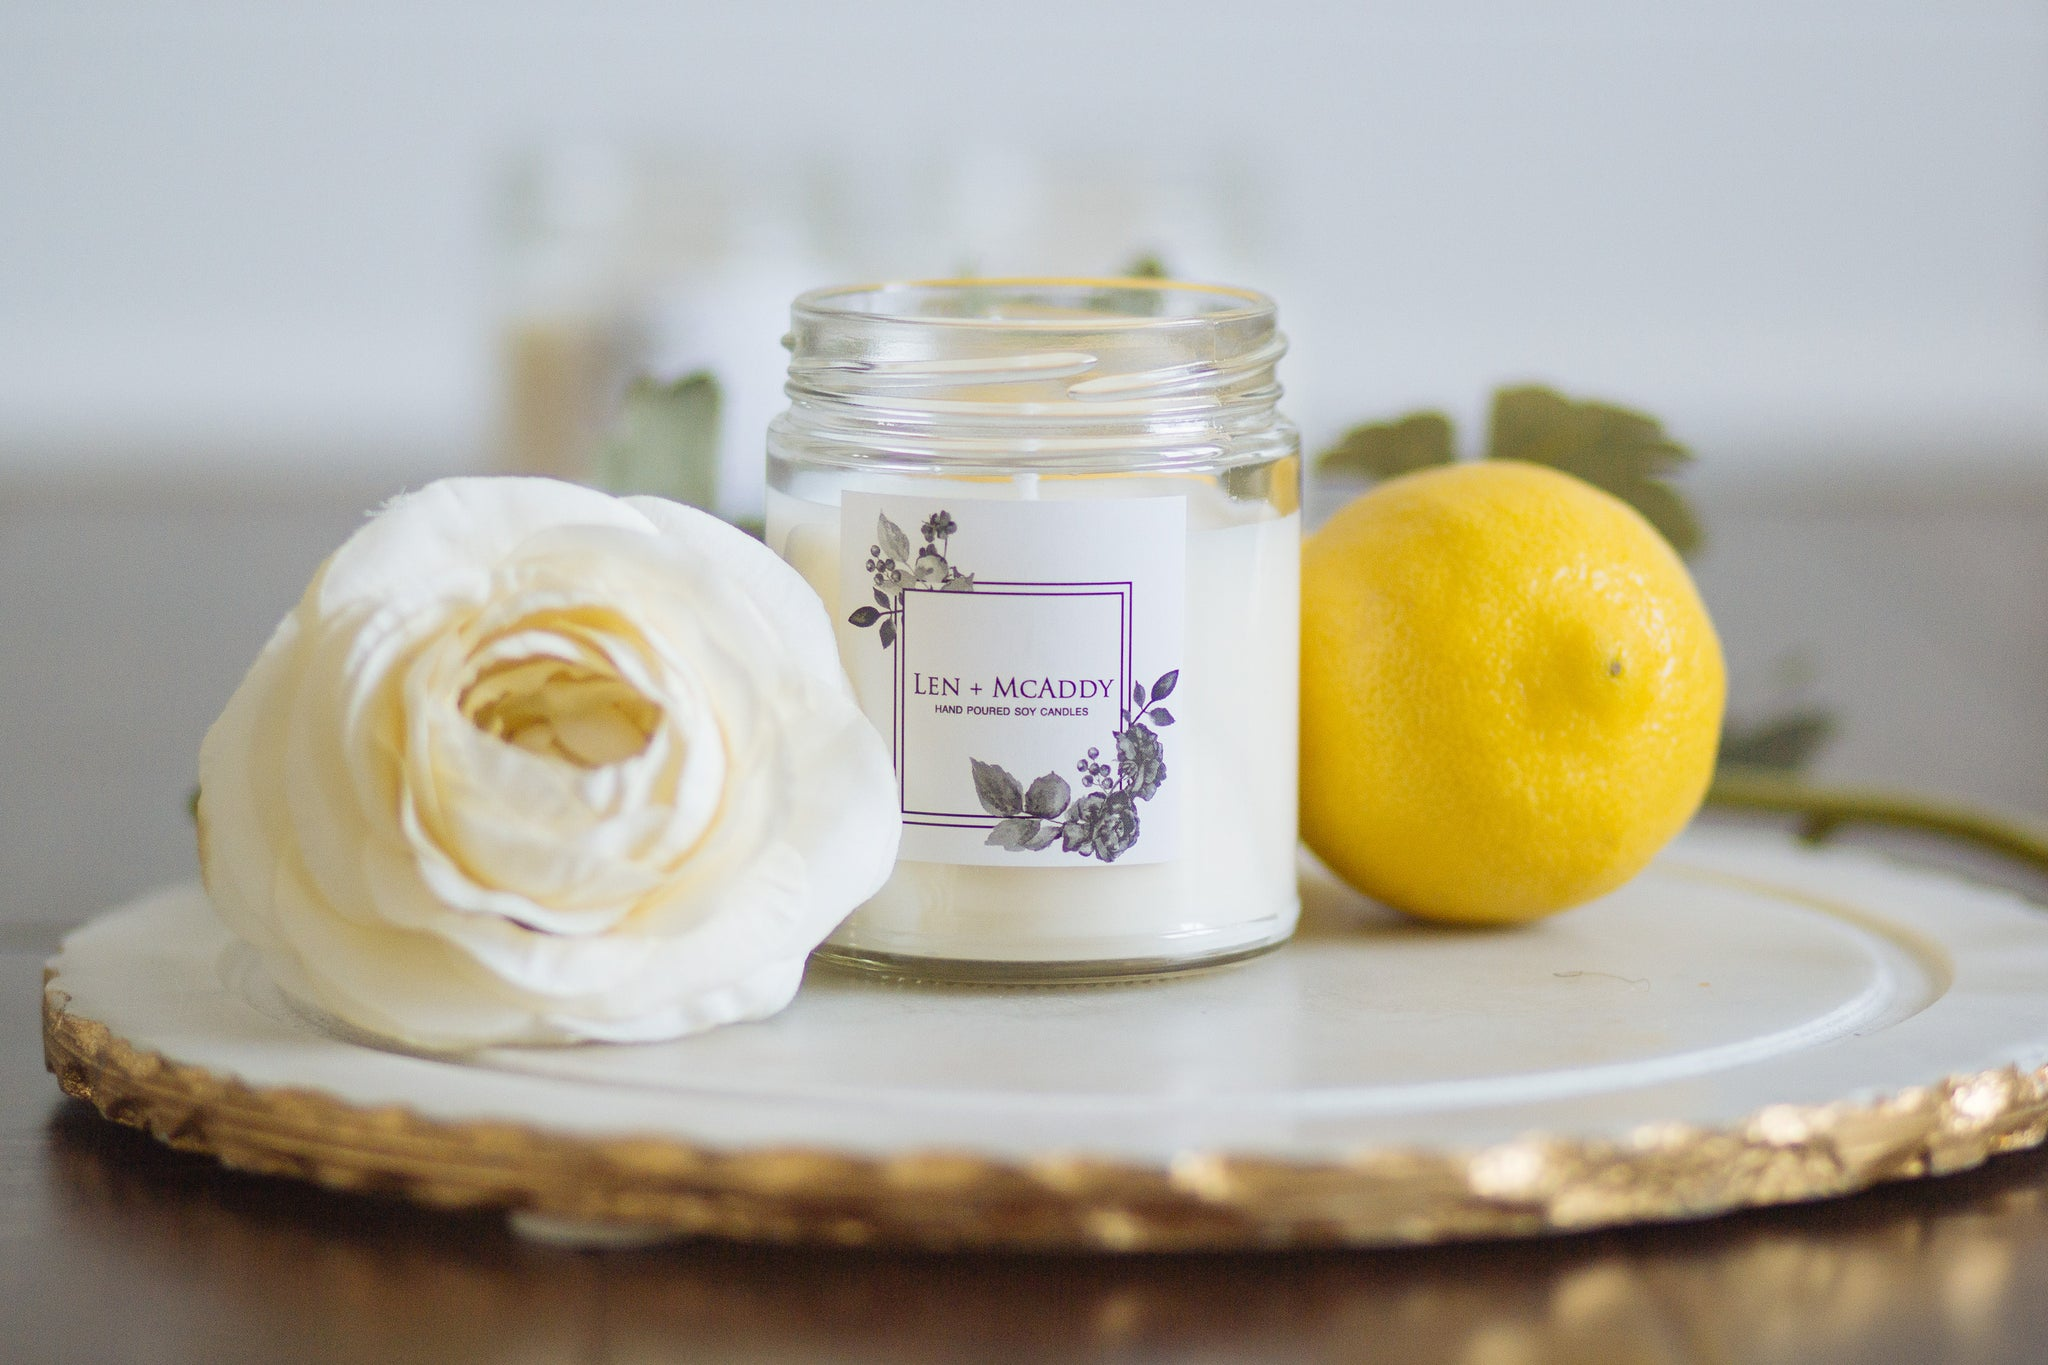 Len + McAddy Candles  - Bergamot And Lime Soy Wax Candle